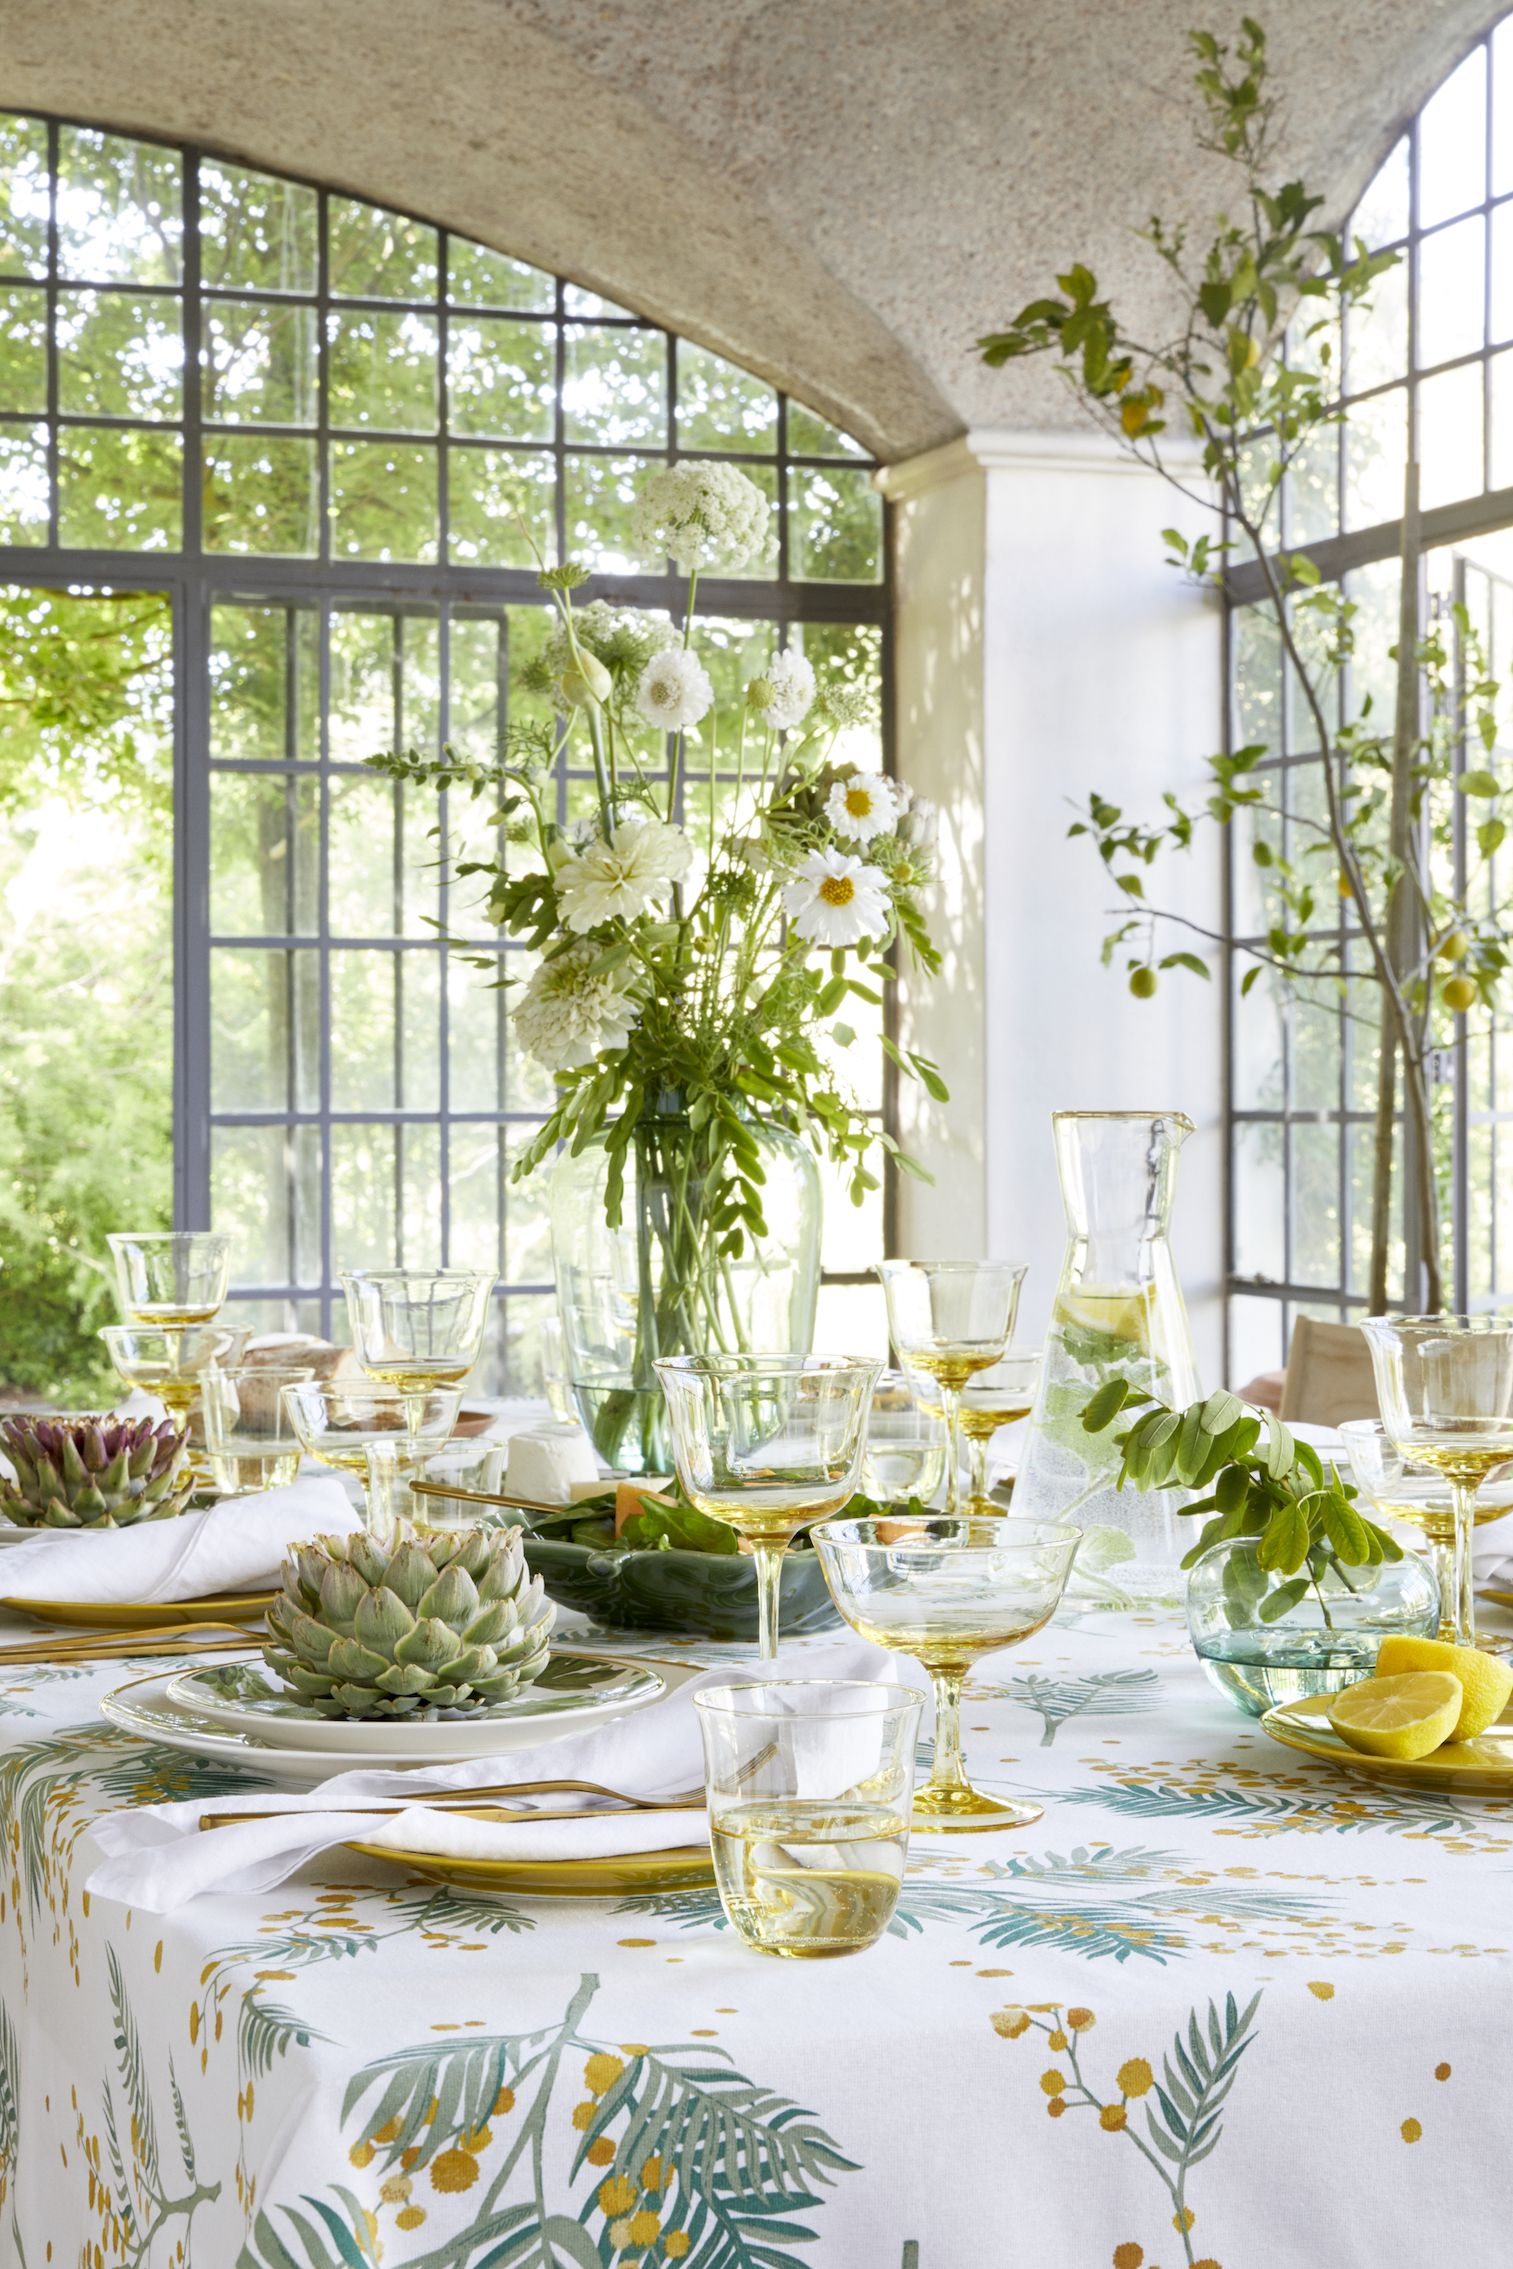 H&M Home spring collection